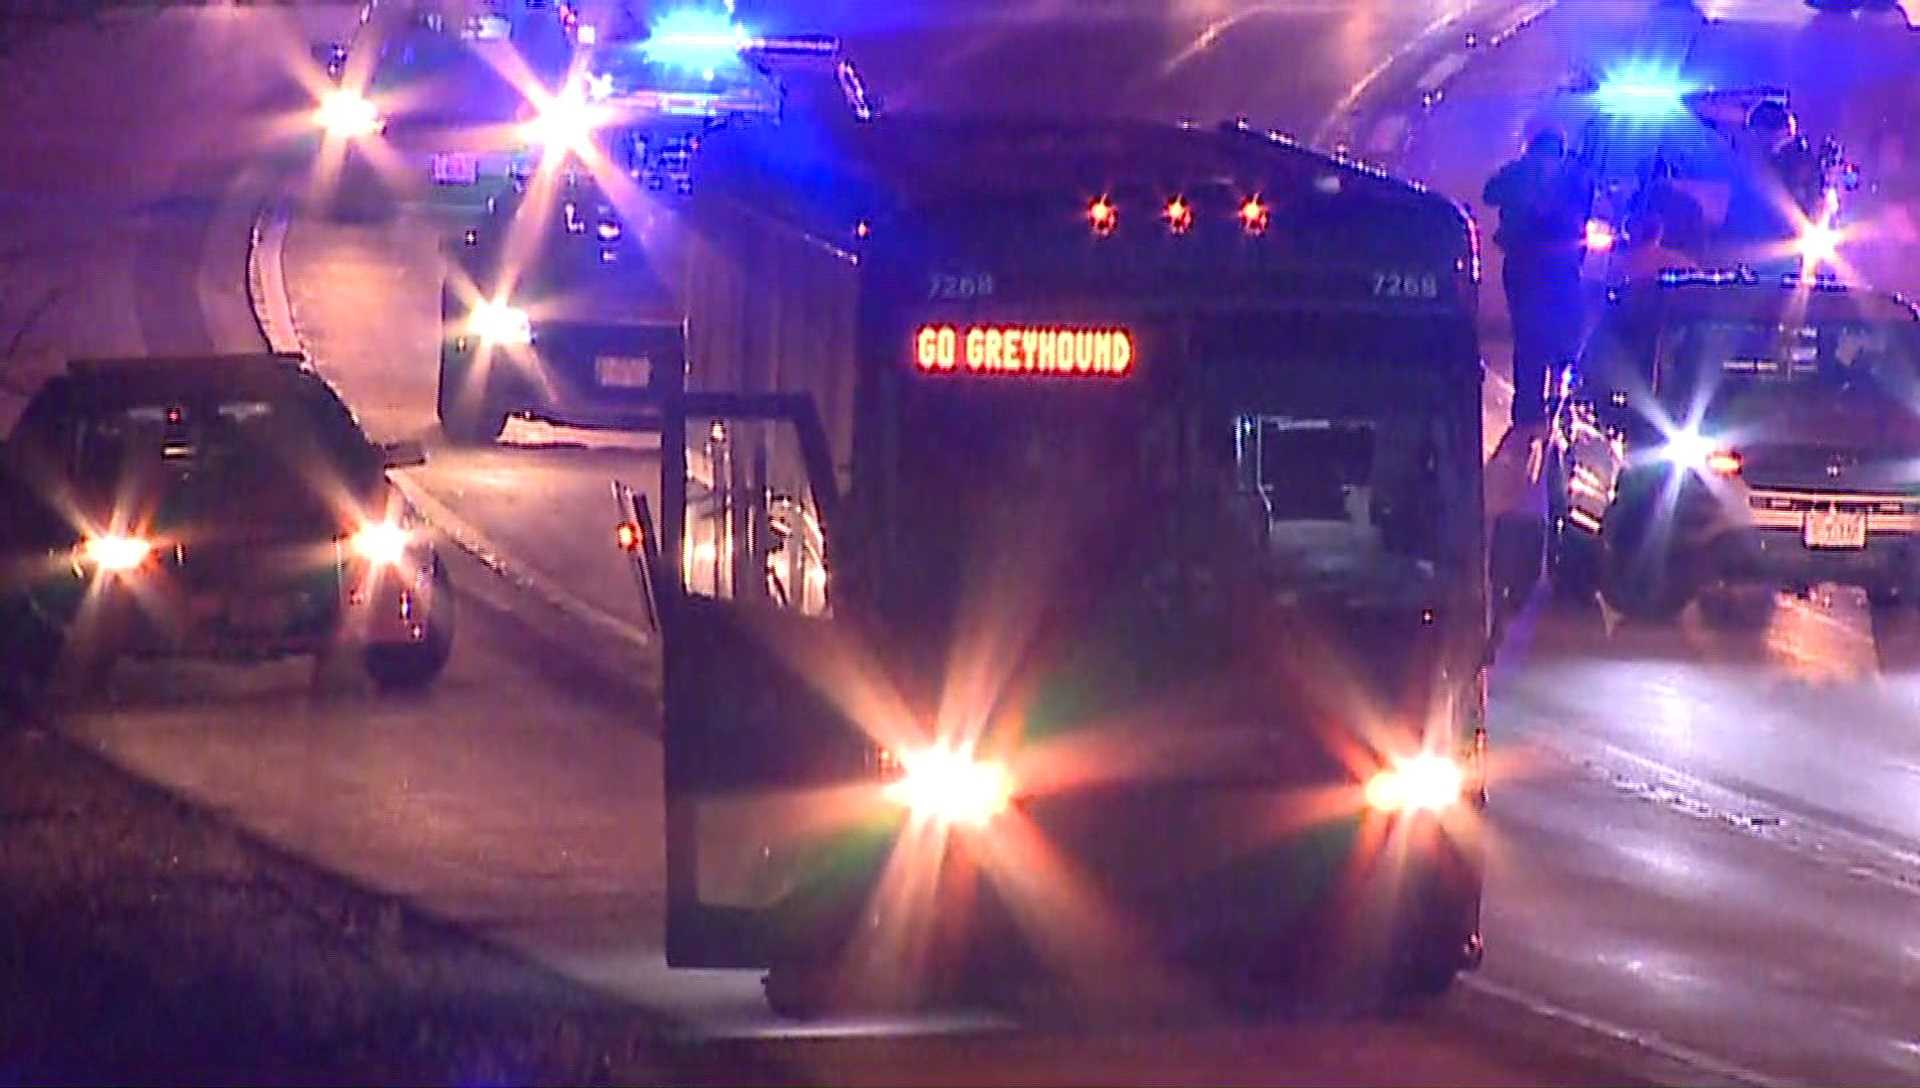 Person in custody after police chase Greyhound bus on interstate